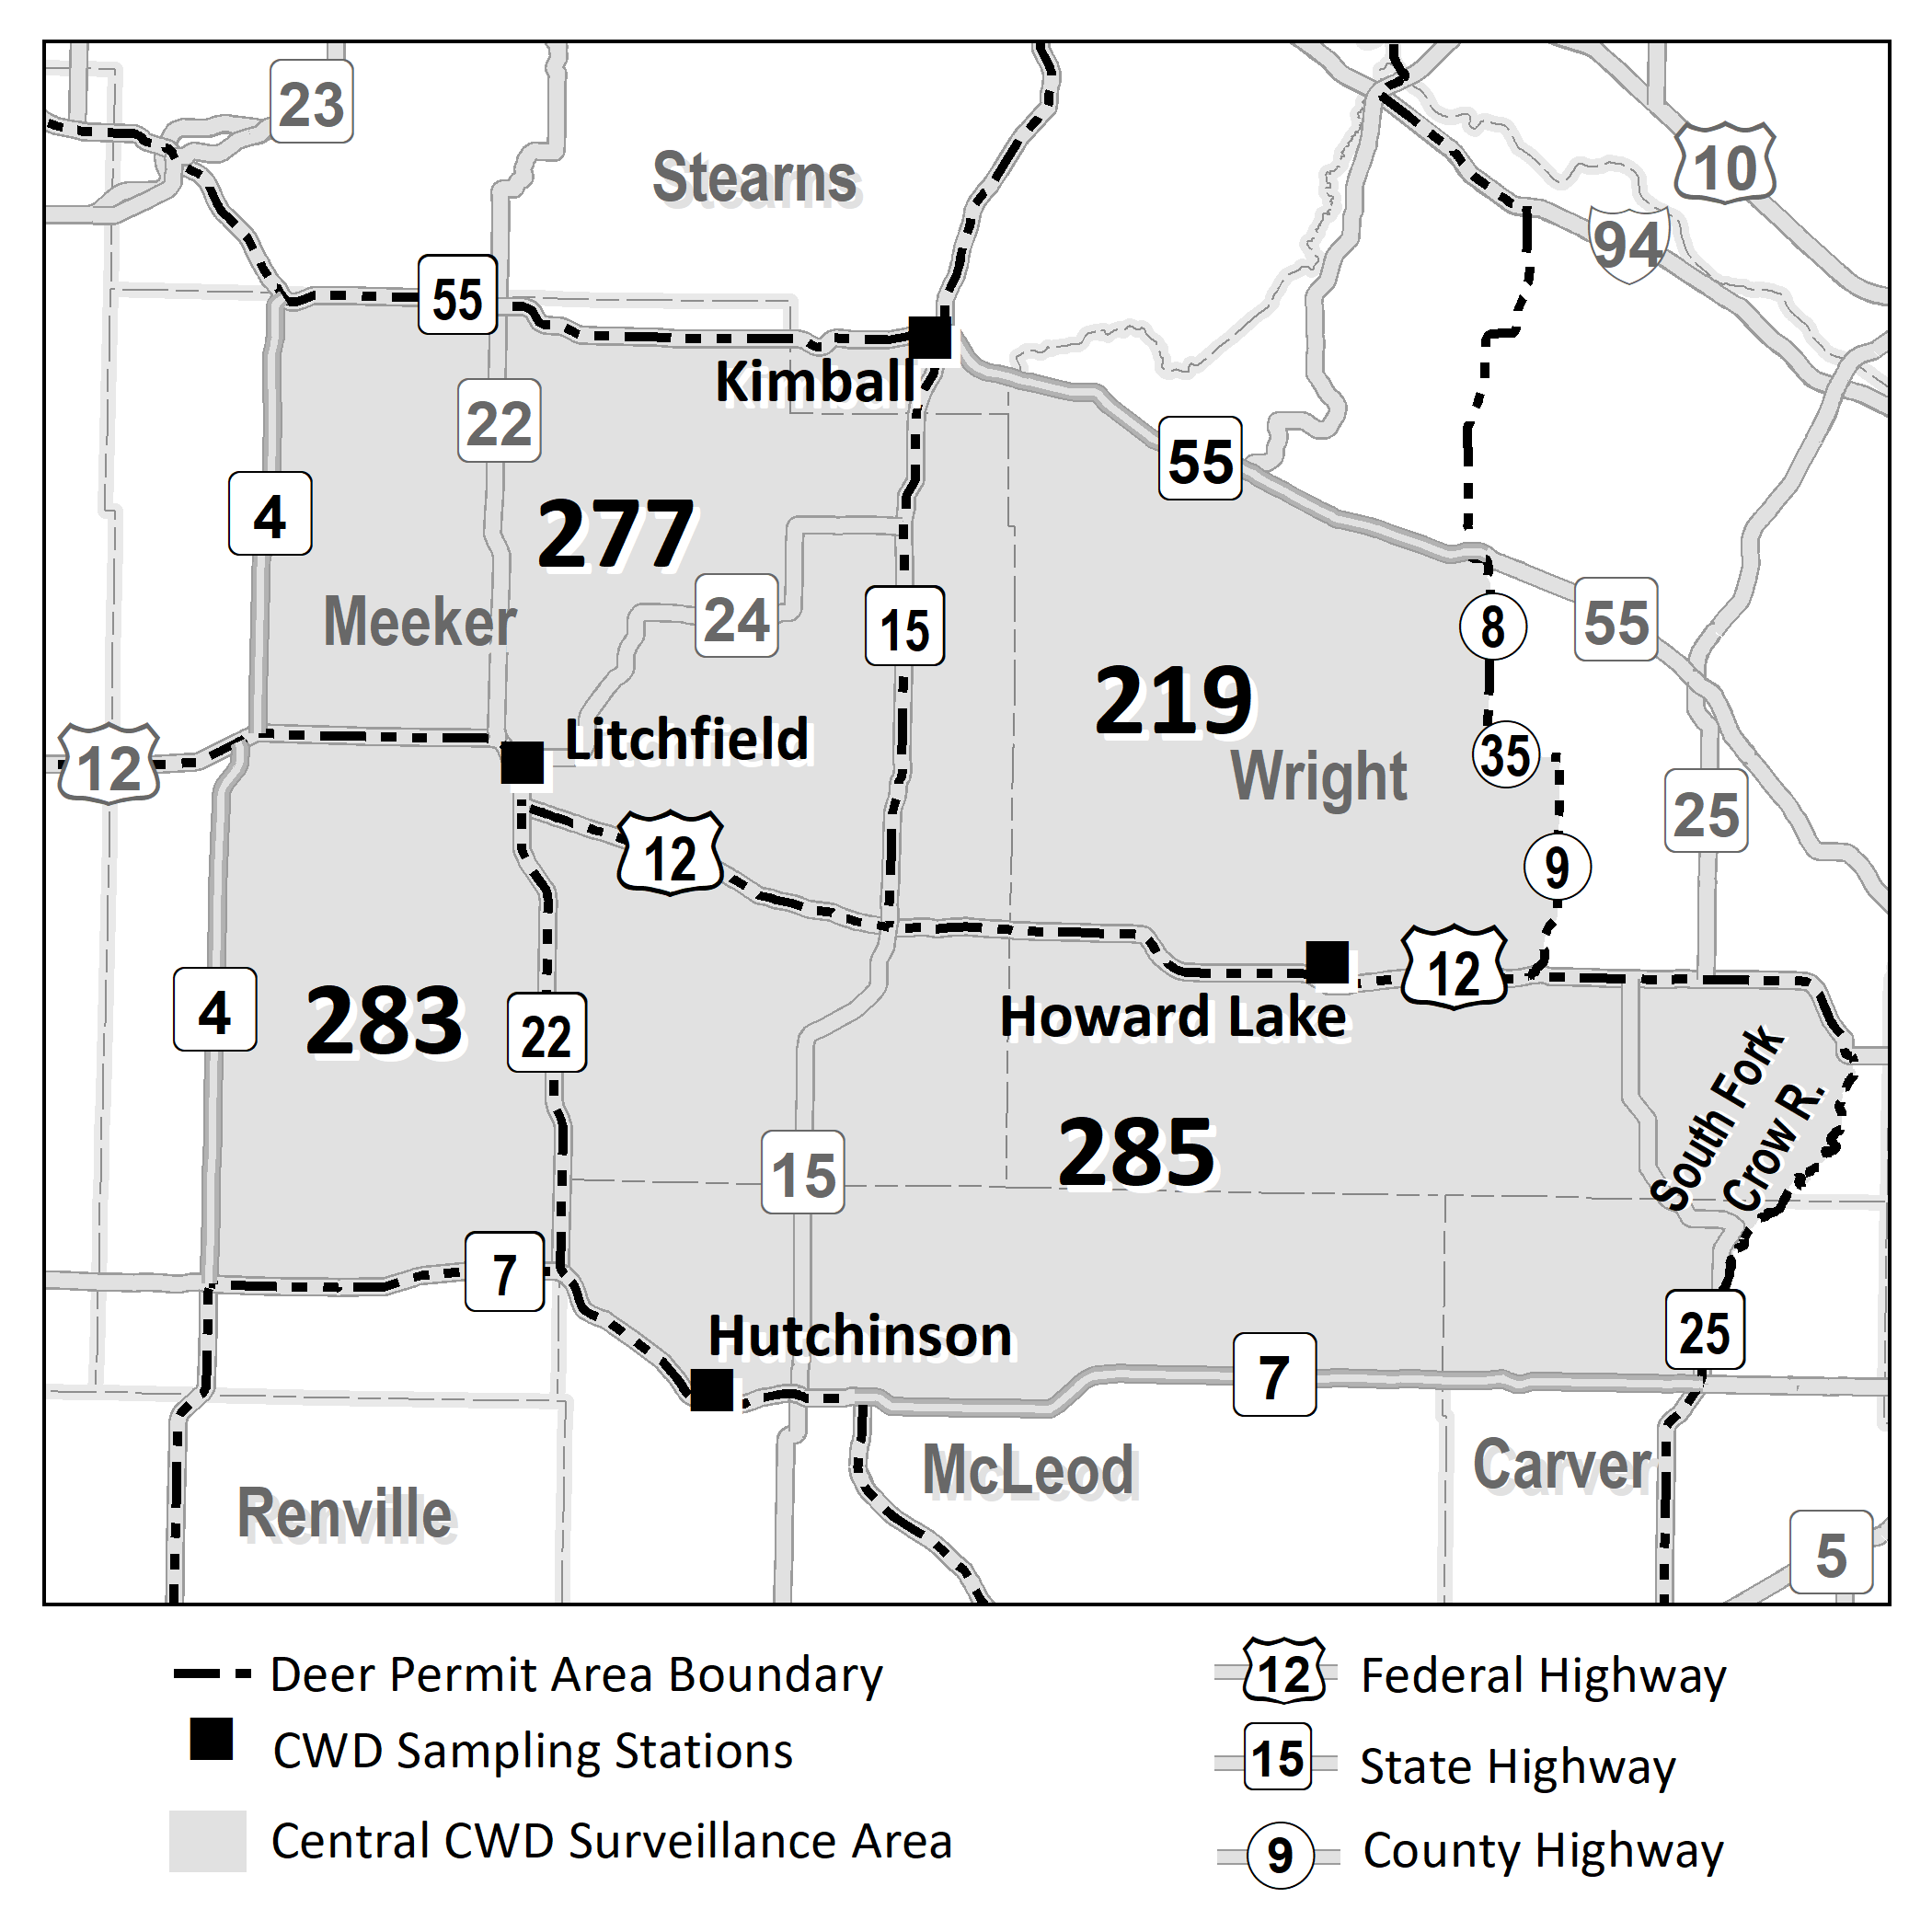 Map showing areas in central Minnesota where CWD testing is mandatory during the 2018 deer season